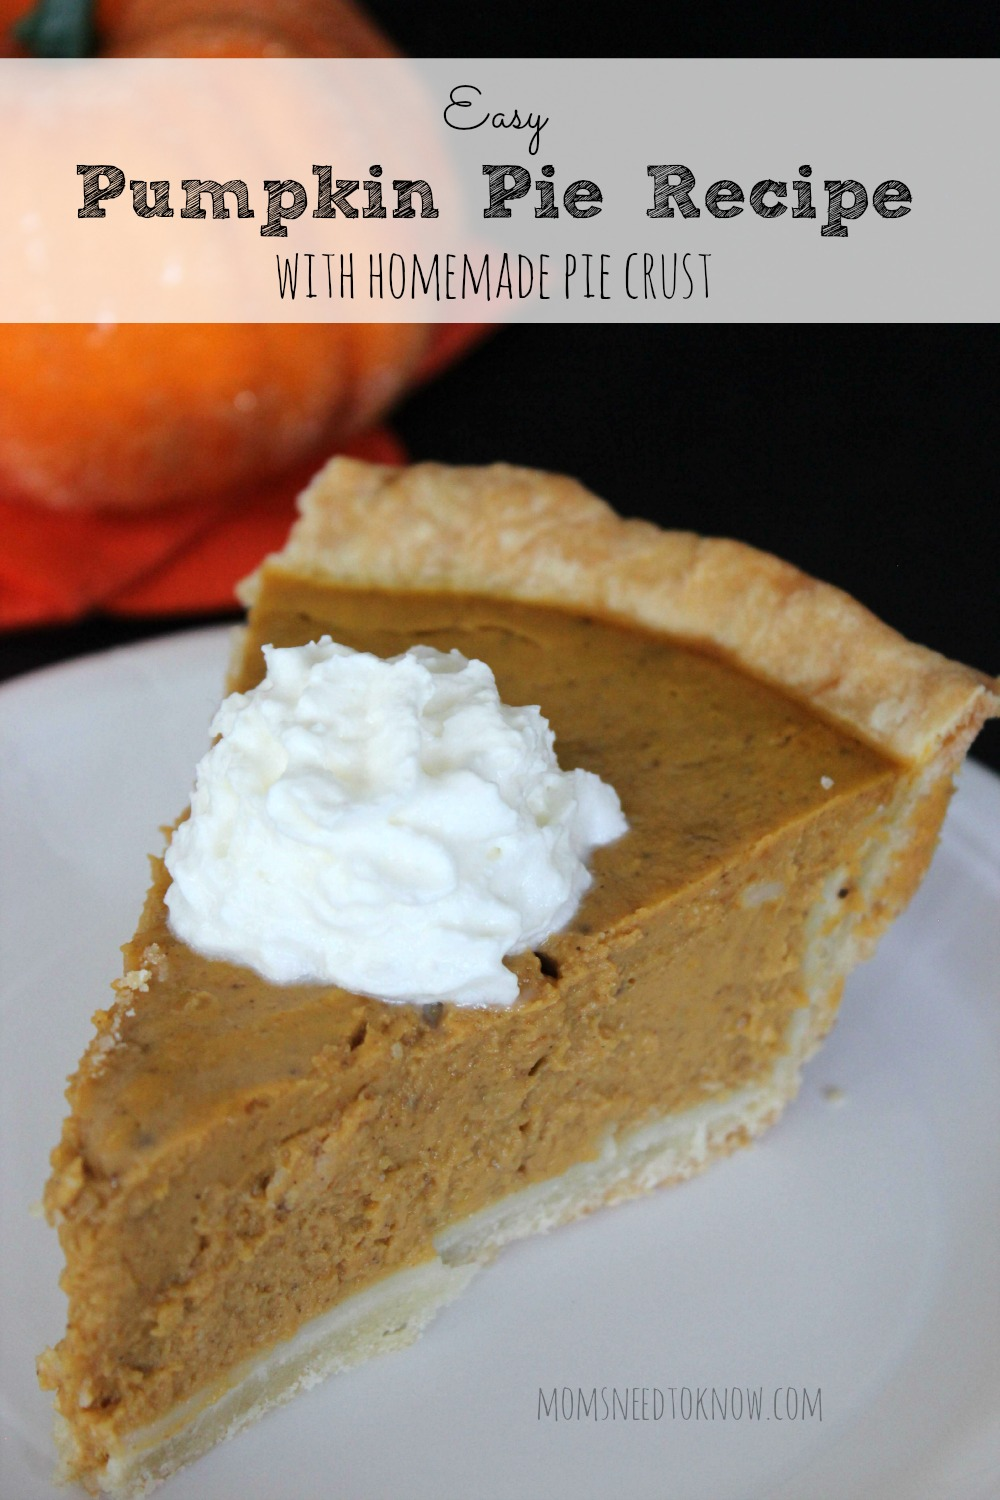 Easy Pumpkin Pie Recipe with Homemade Pie Crust